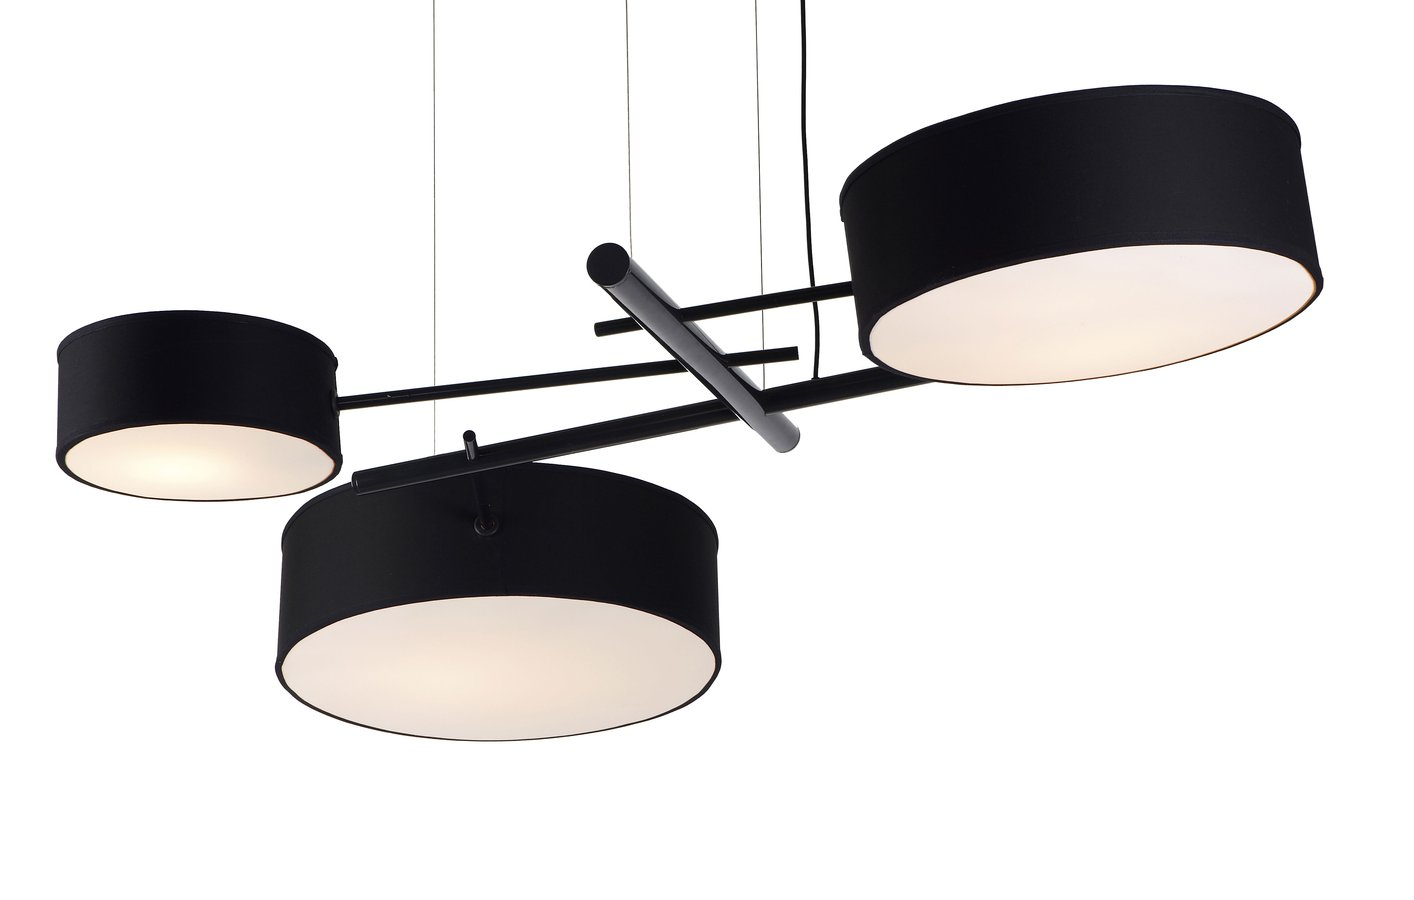 excel chandelier by roll hill ecc. Black Bedroom Furniture Sets. Home Design Ideas